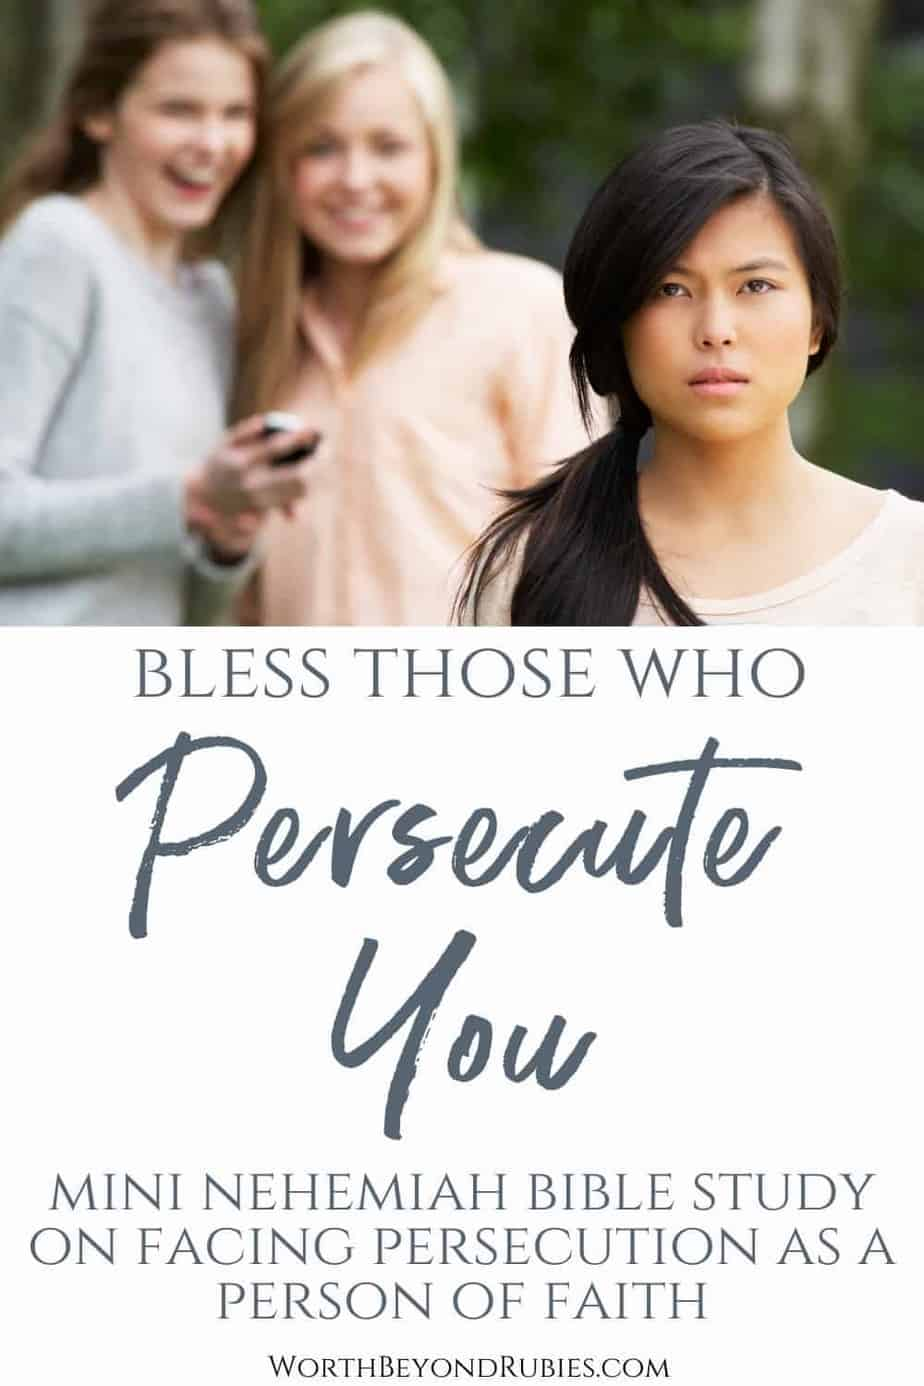 An image of a young woman with long black hair looking hurt as two young women behind her make fun of her - With text underneath that says Bless Those Who Persecute You - Mini Nehemiah Bible Study